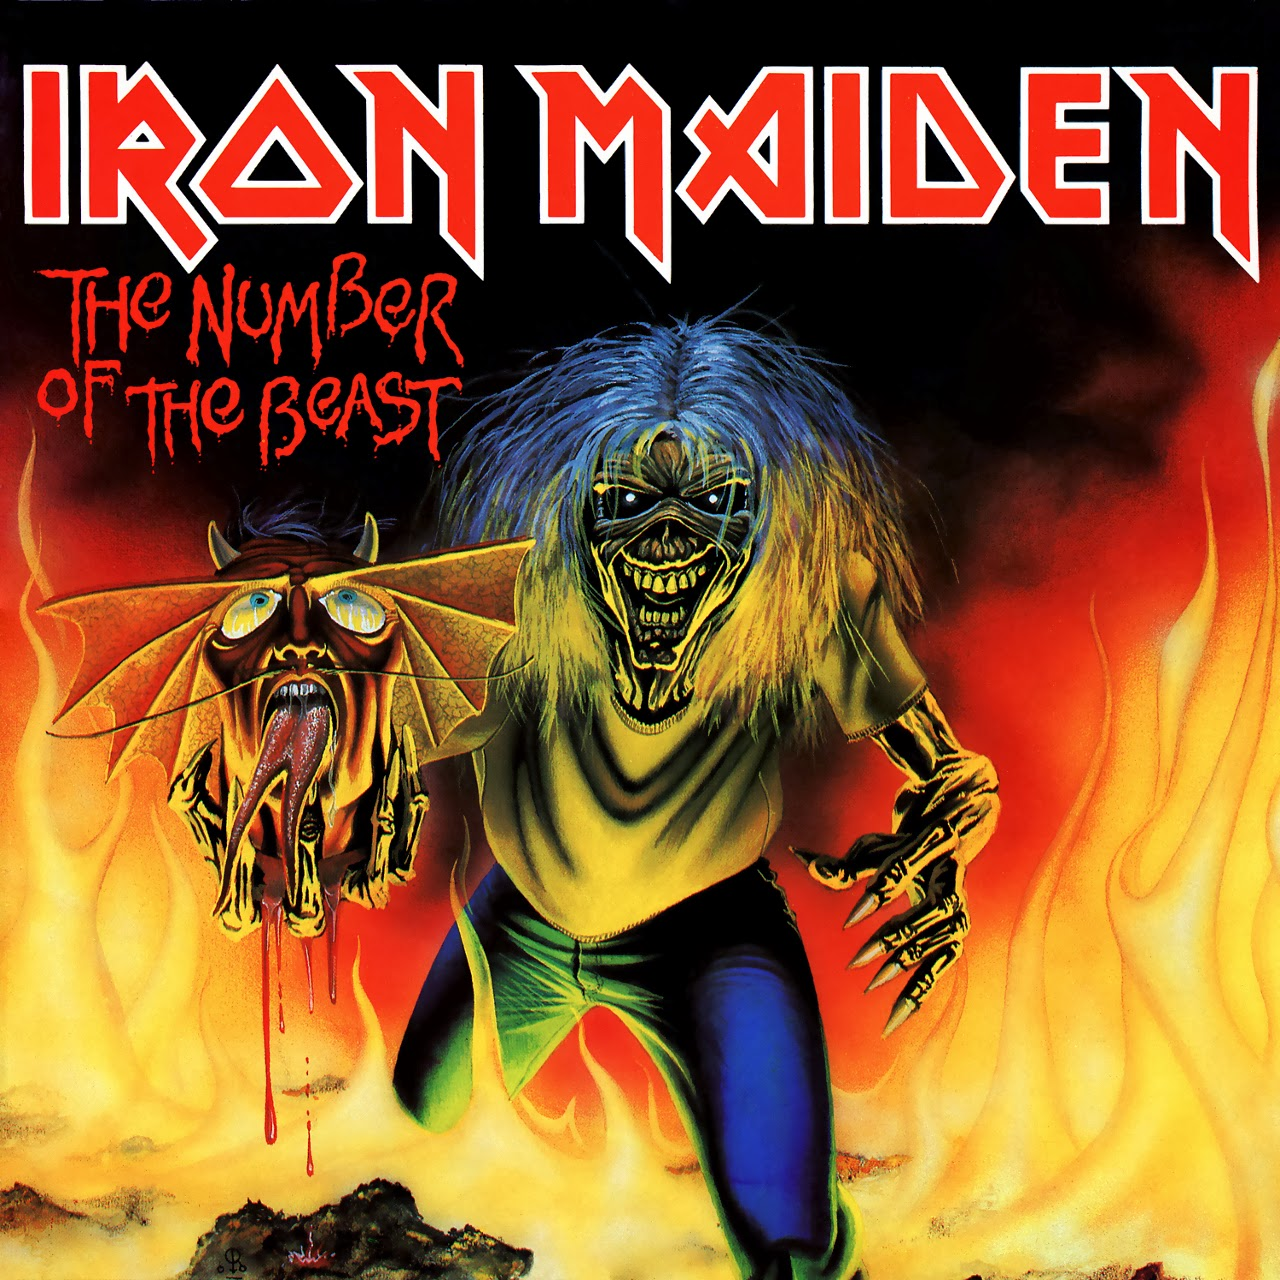 maiden rock single personals Iron maiden - albums + singles + live + bootlegs + more download torrent: iron maiden - albums + singles + live + bootlegs + more description: === note that the audio files are in ogg,.